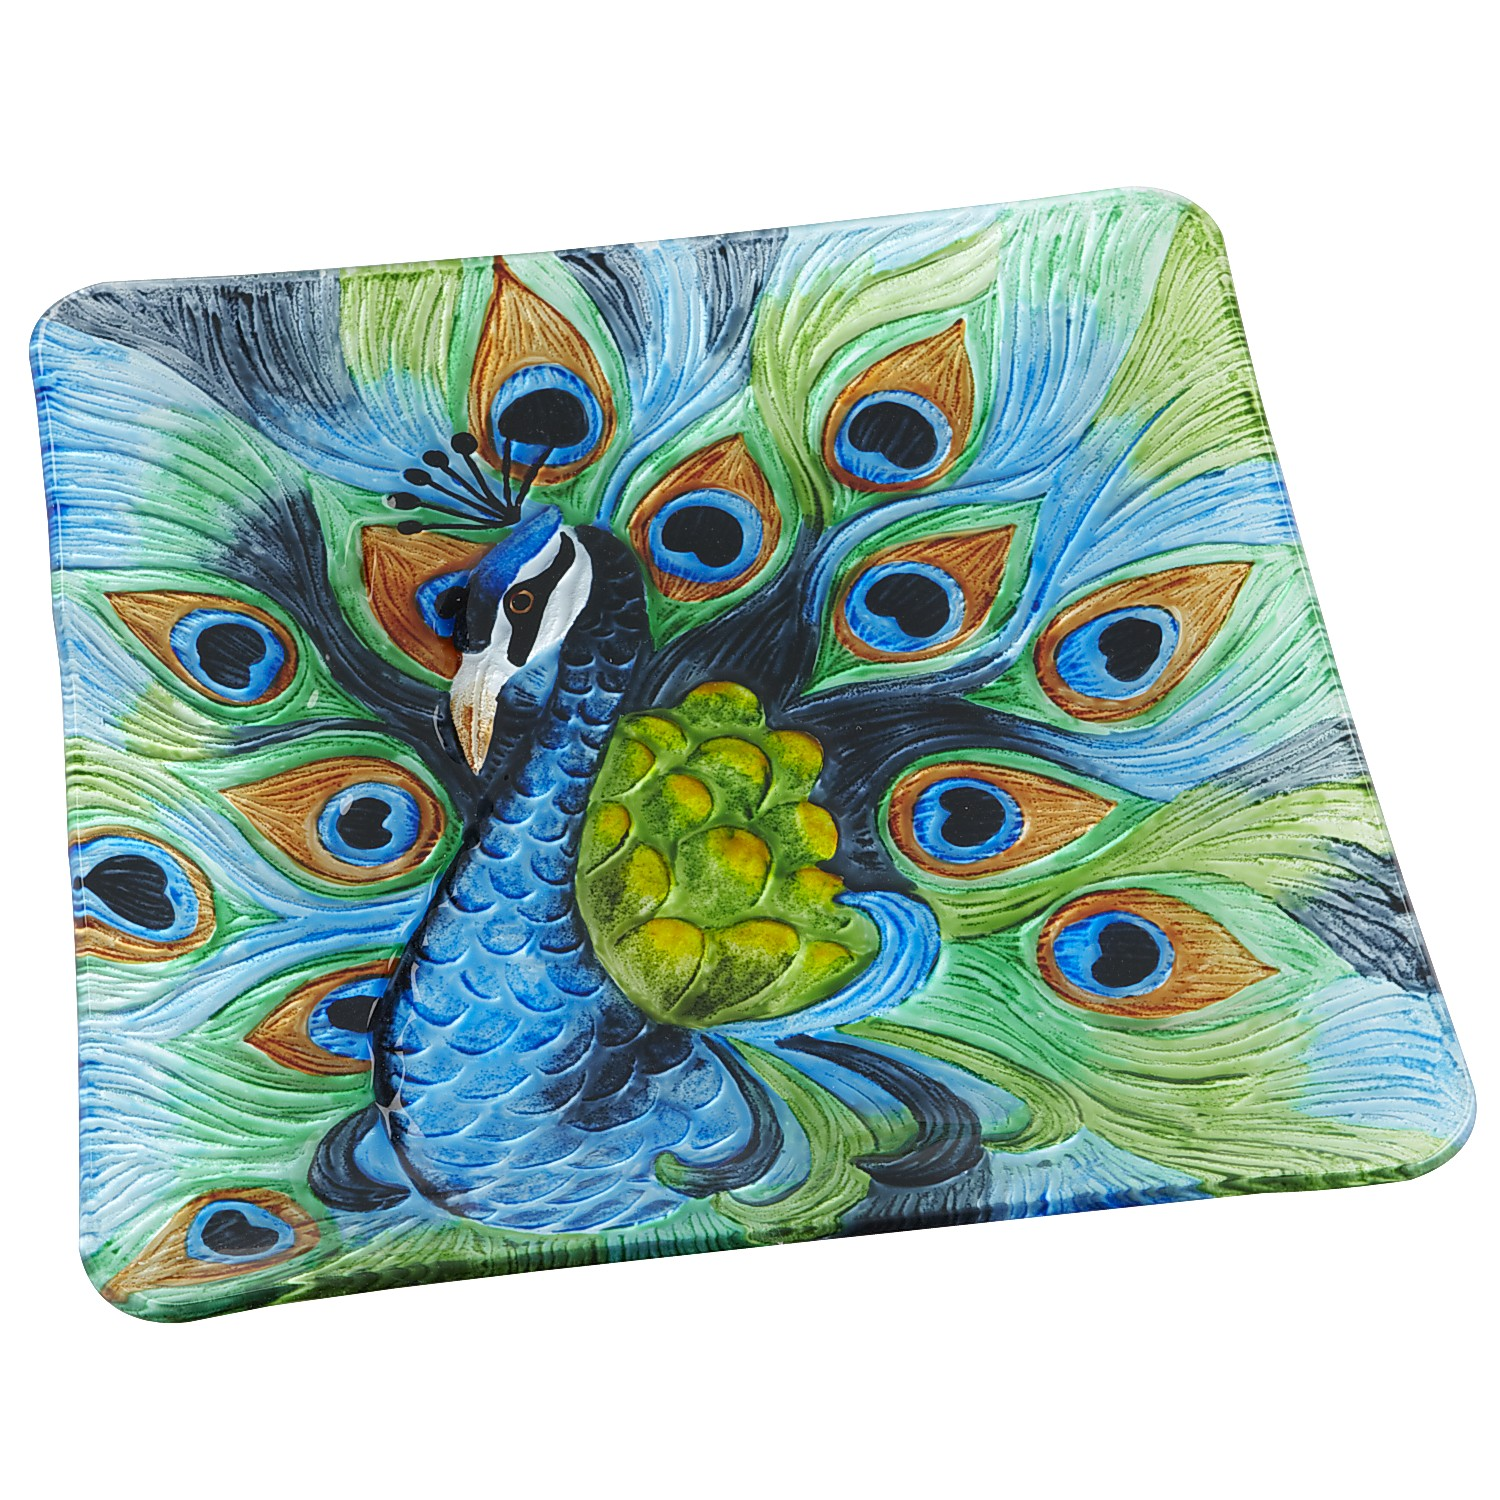 Square Peacock Serving Platter